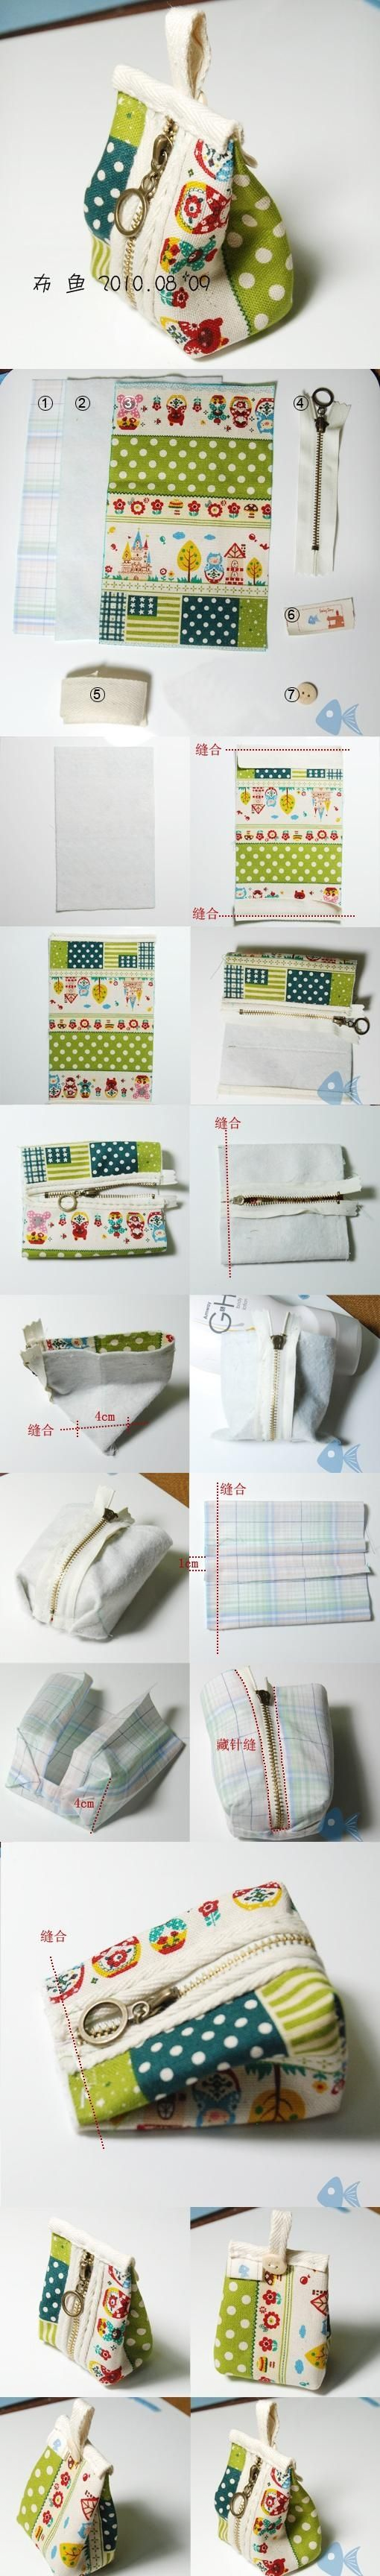 DIY Small Handbag DIY Small Handbag by diyforever